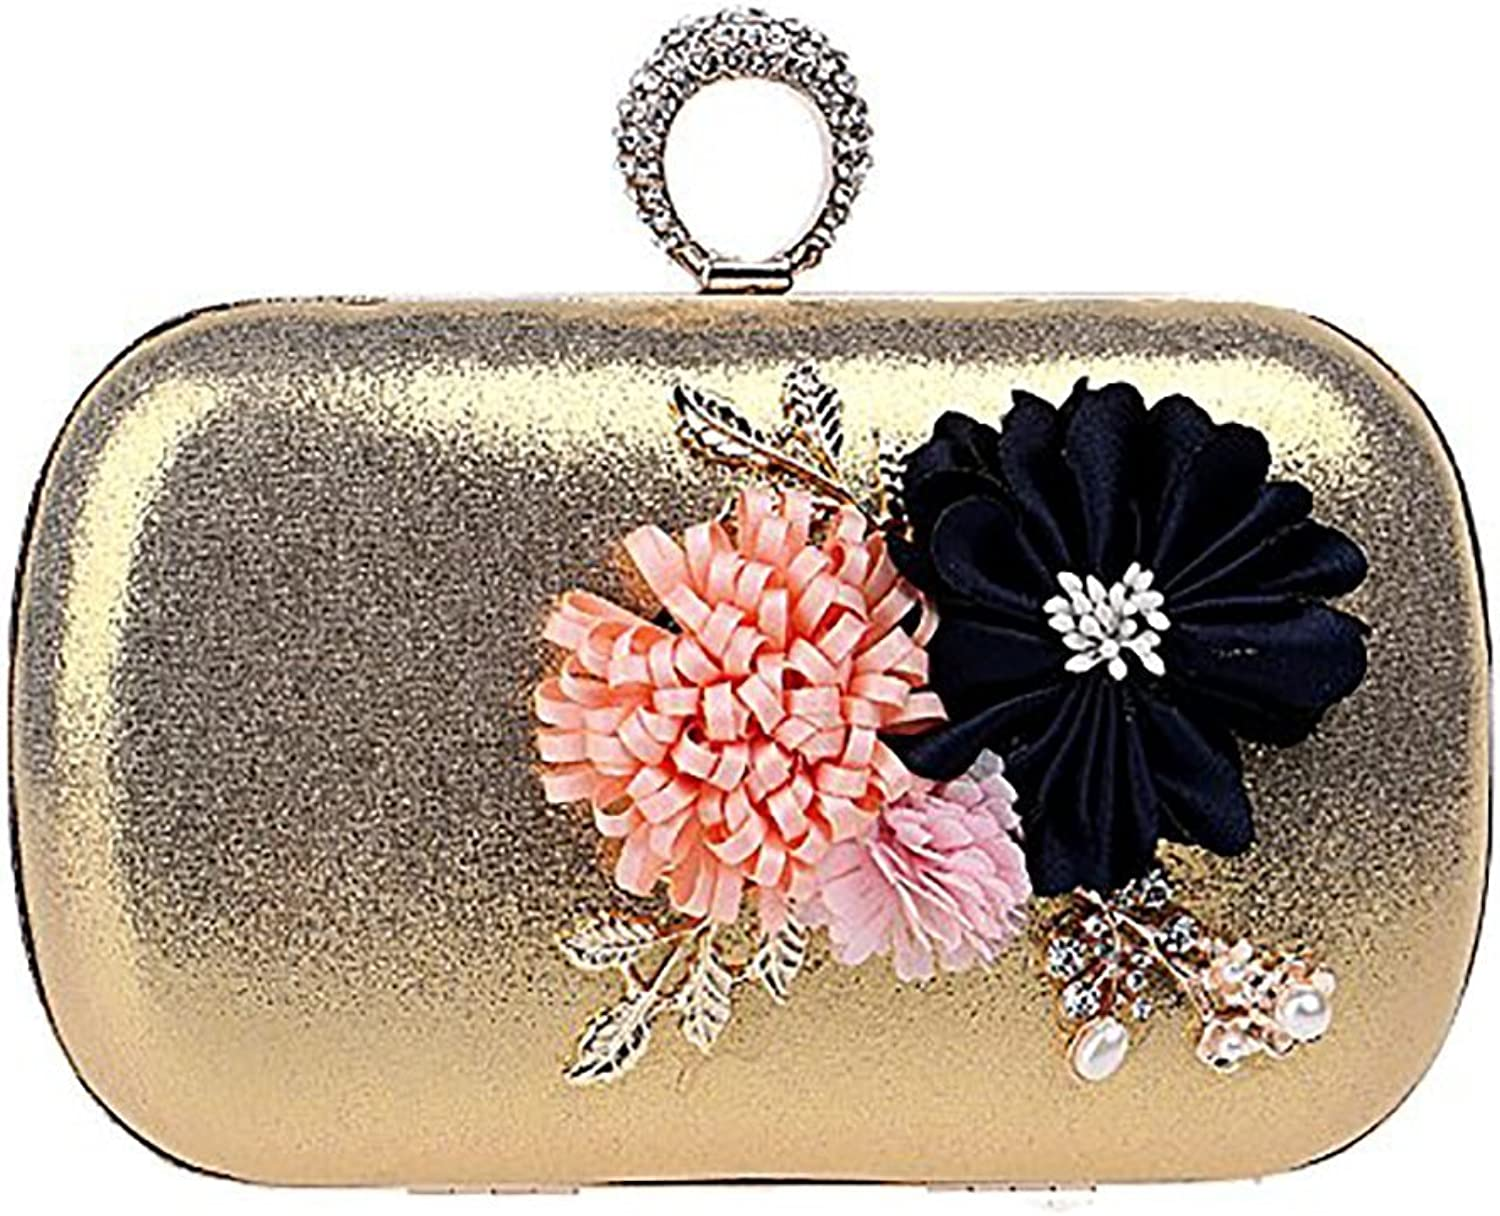 CIFFOST Women Flower Clutches Evening Bags Handbags Wedding Clutch Purse, Rhinestone Ring Handle Bag